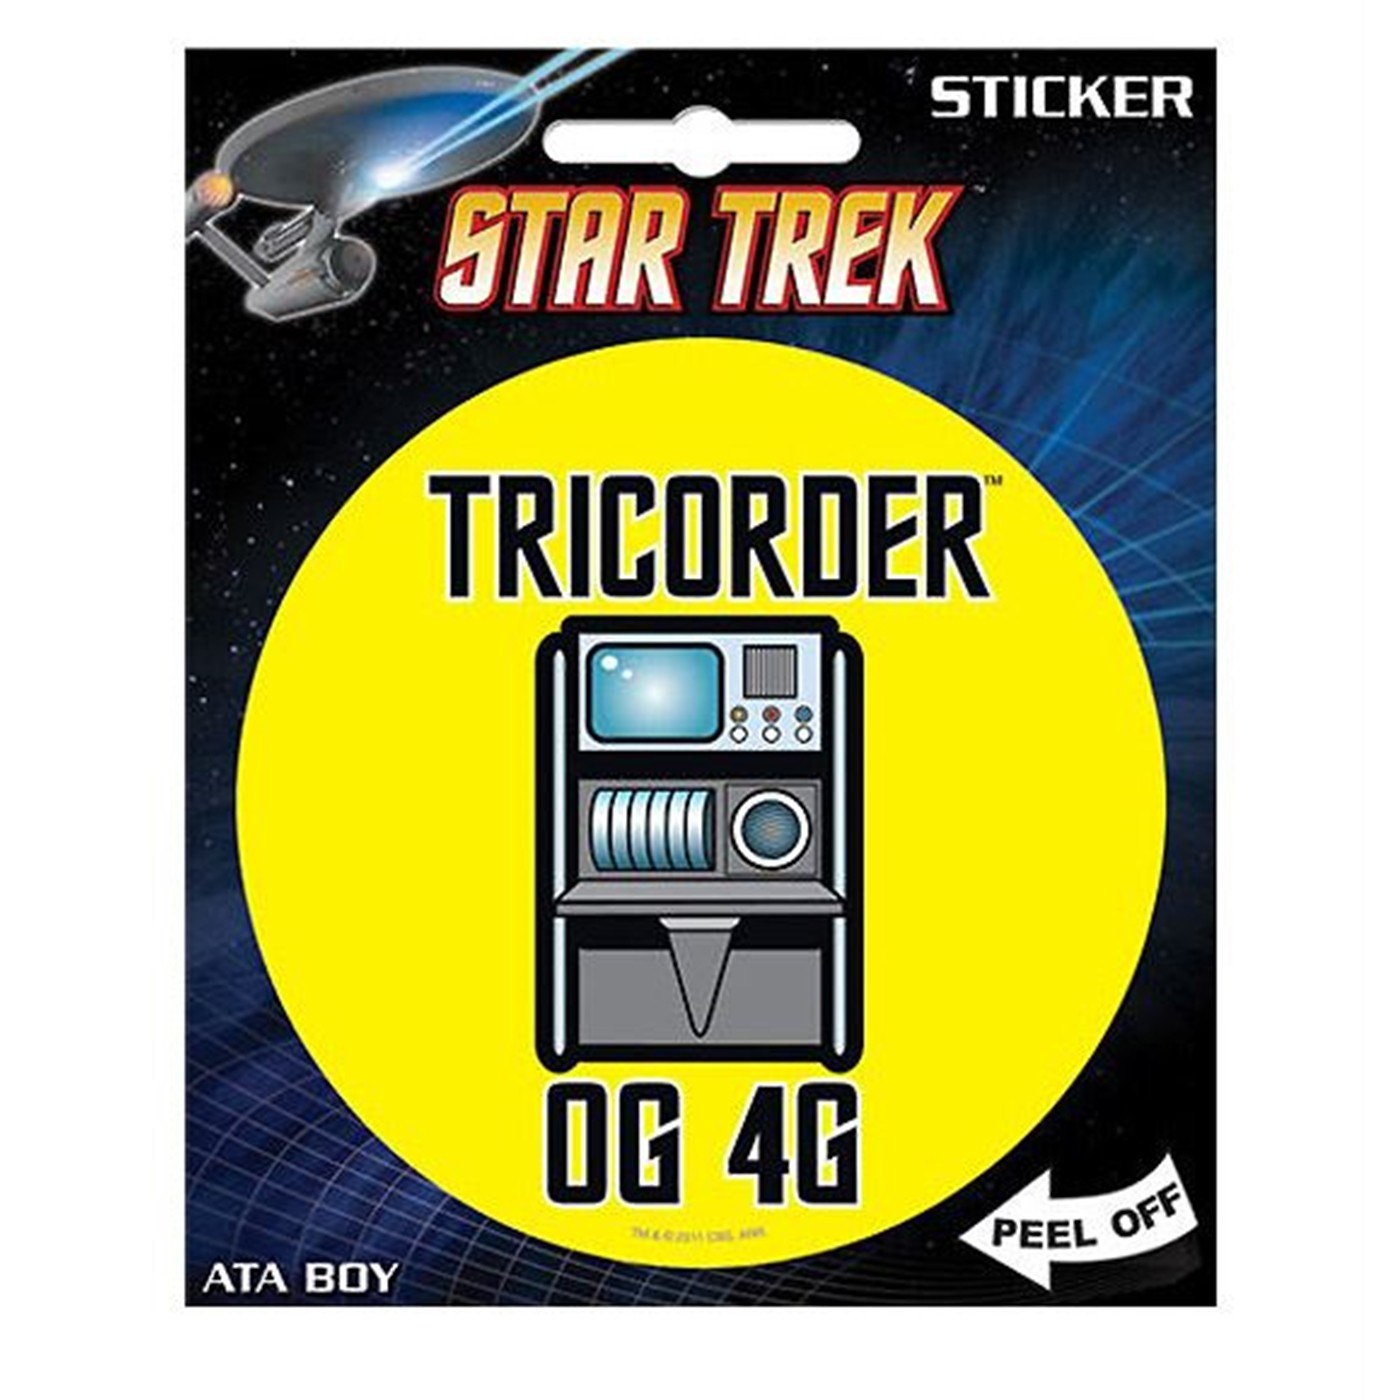 Star Trek Tricorder Sticker